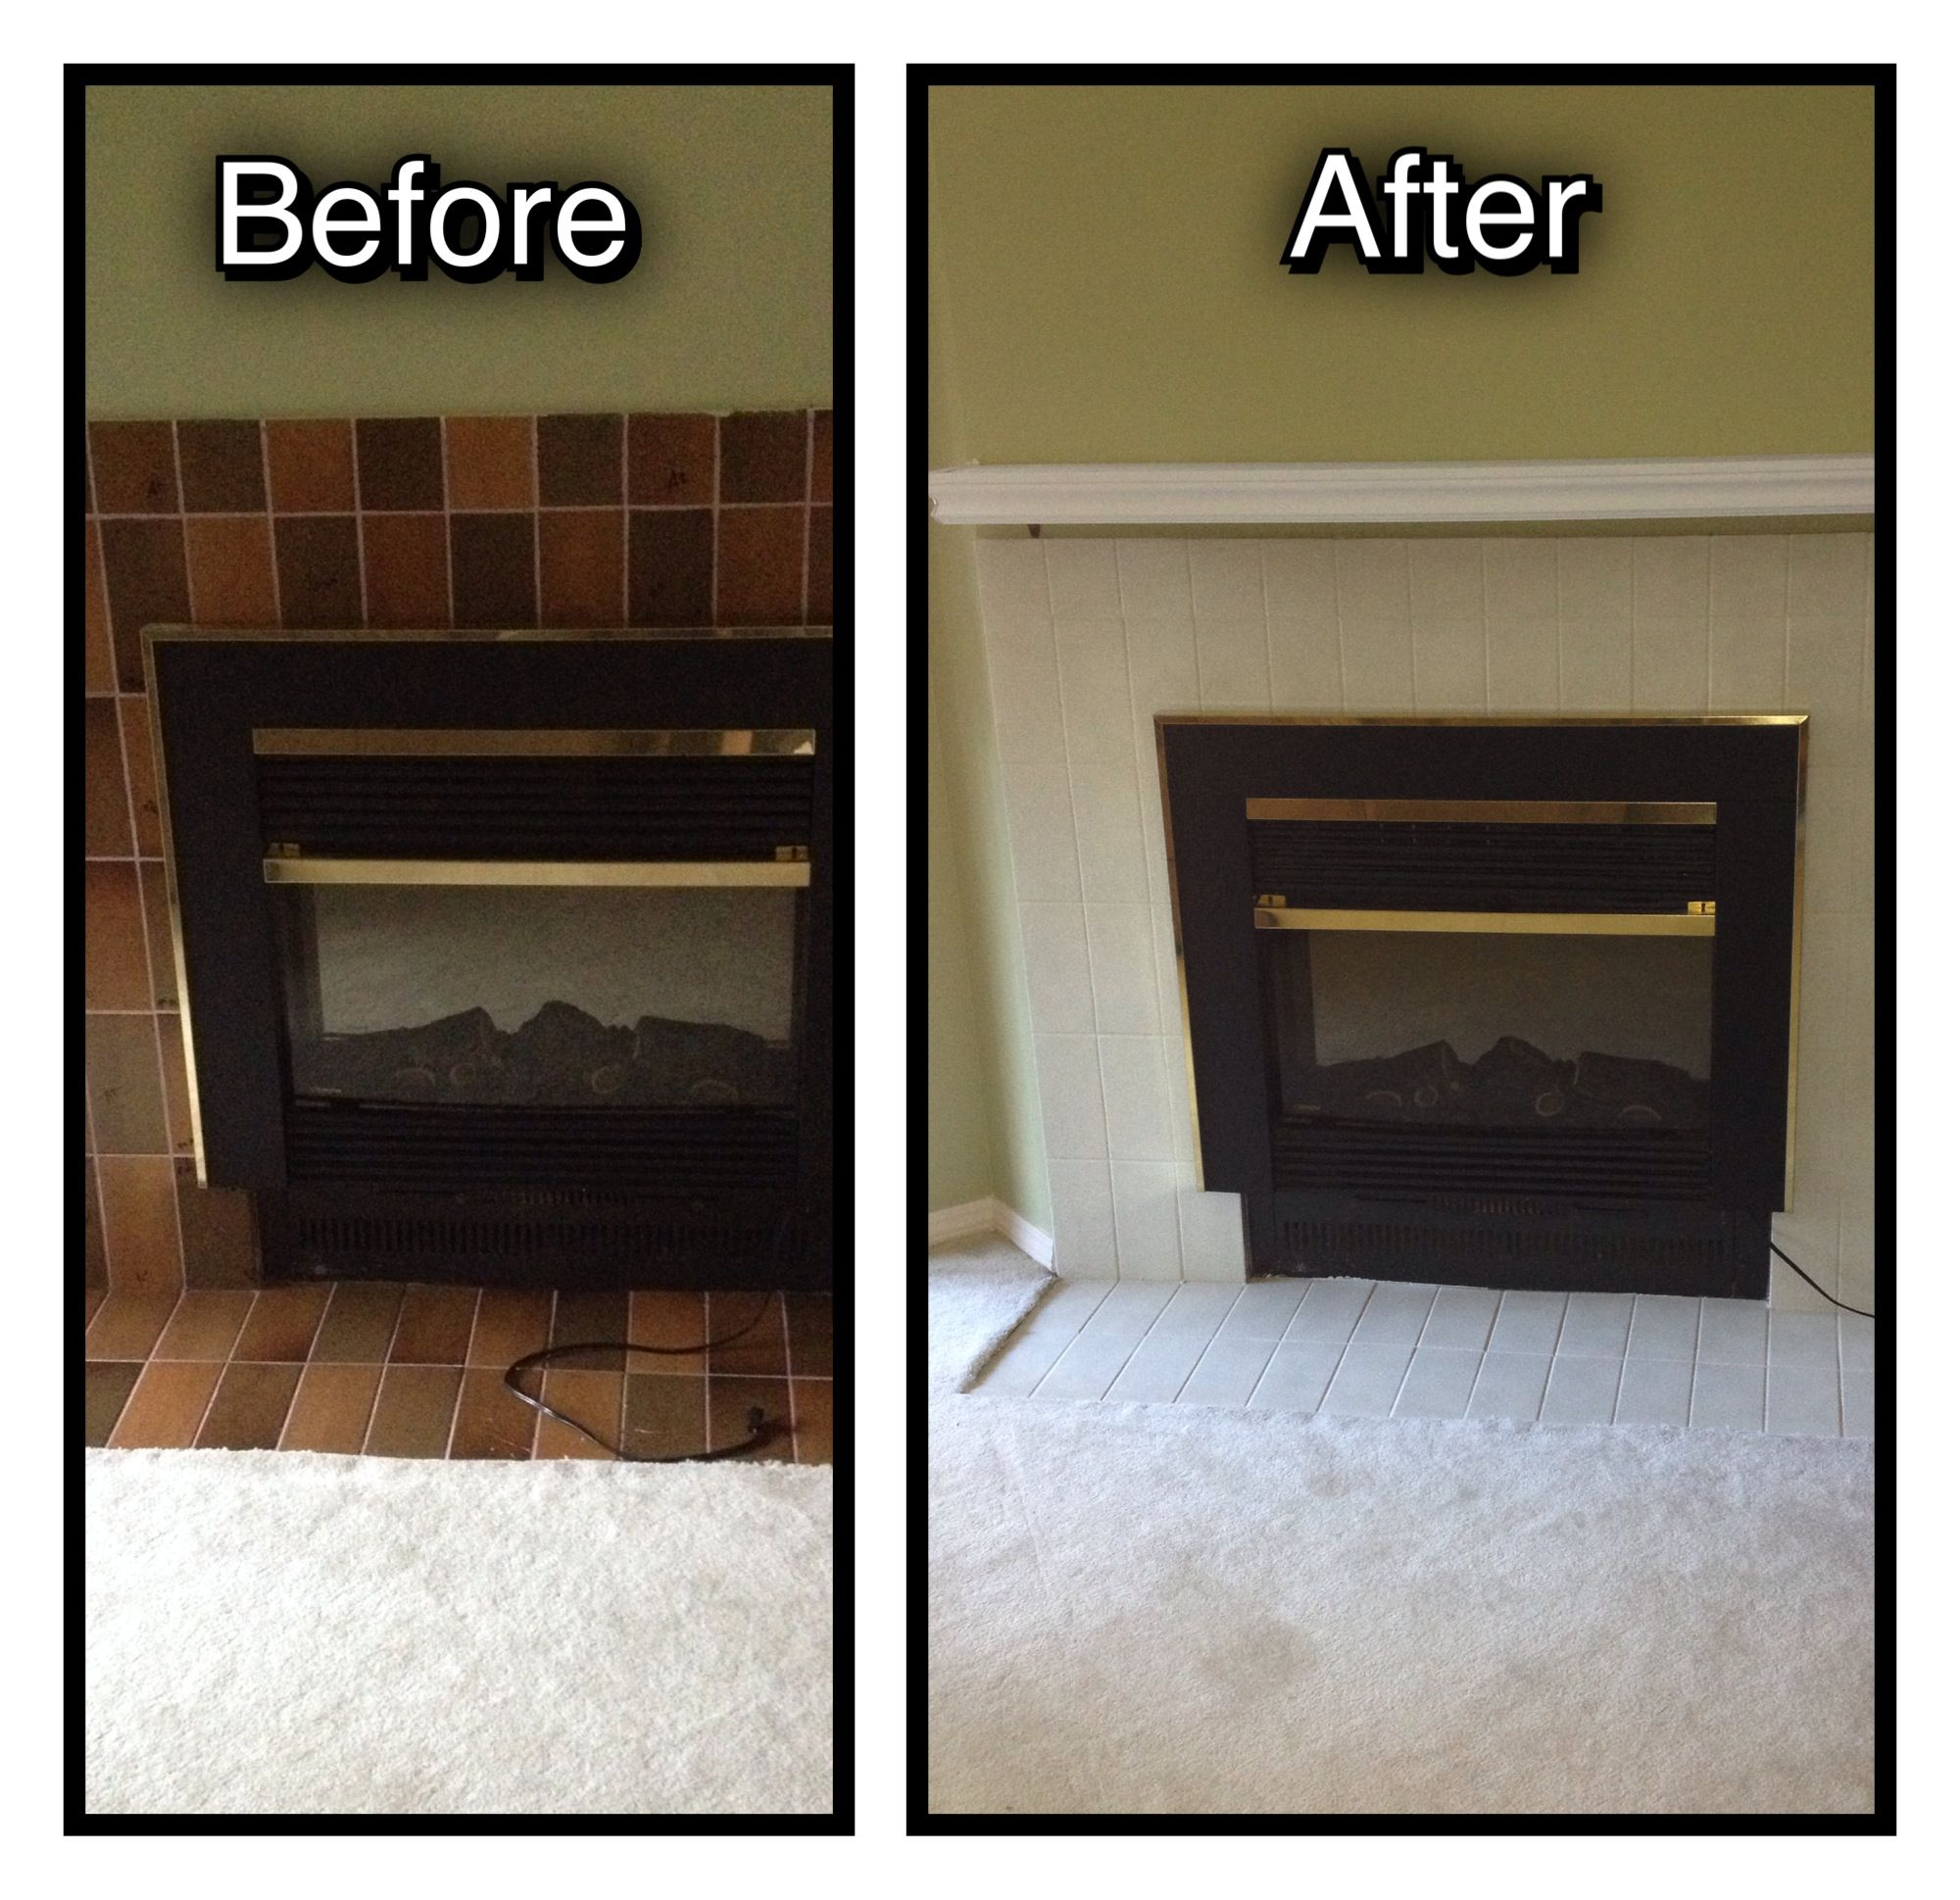 60 Fireplace Diy Facelift I Have Done This Myself In Just Over A Few Days Basically I Taped